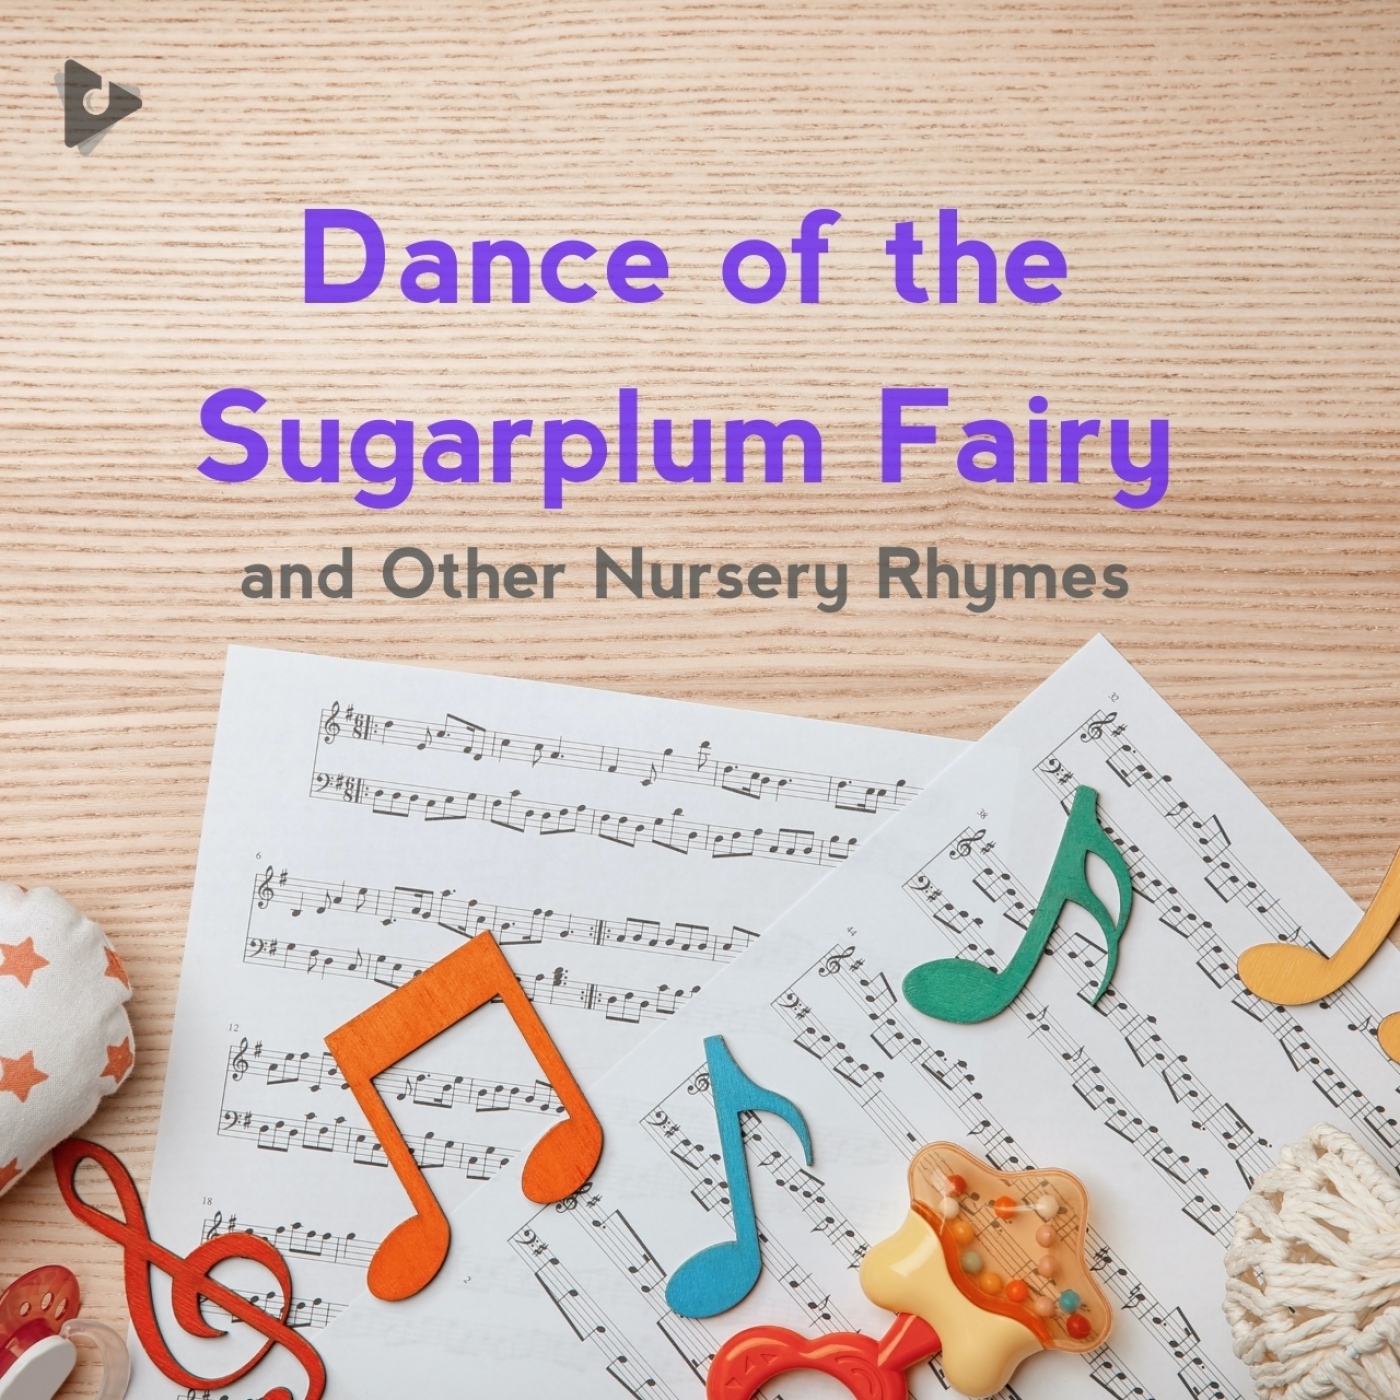 Dance of the Sugarplum Fairy and Other Nursery Rhymes